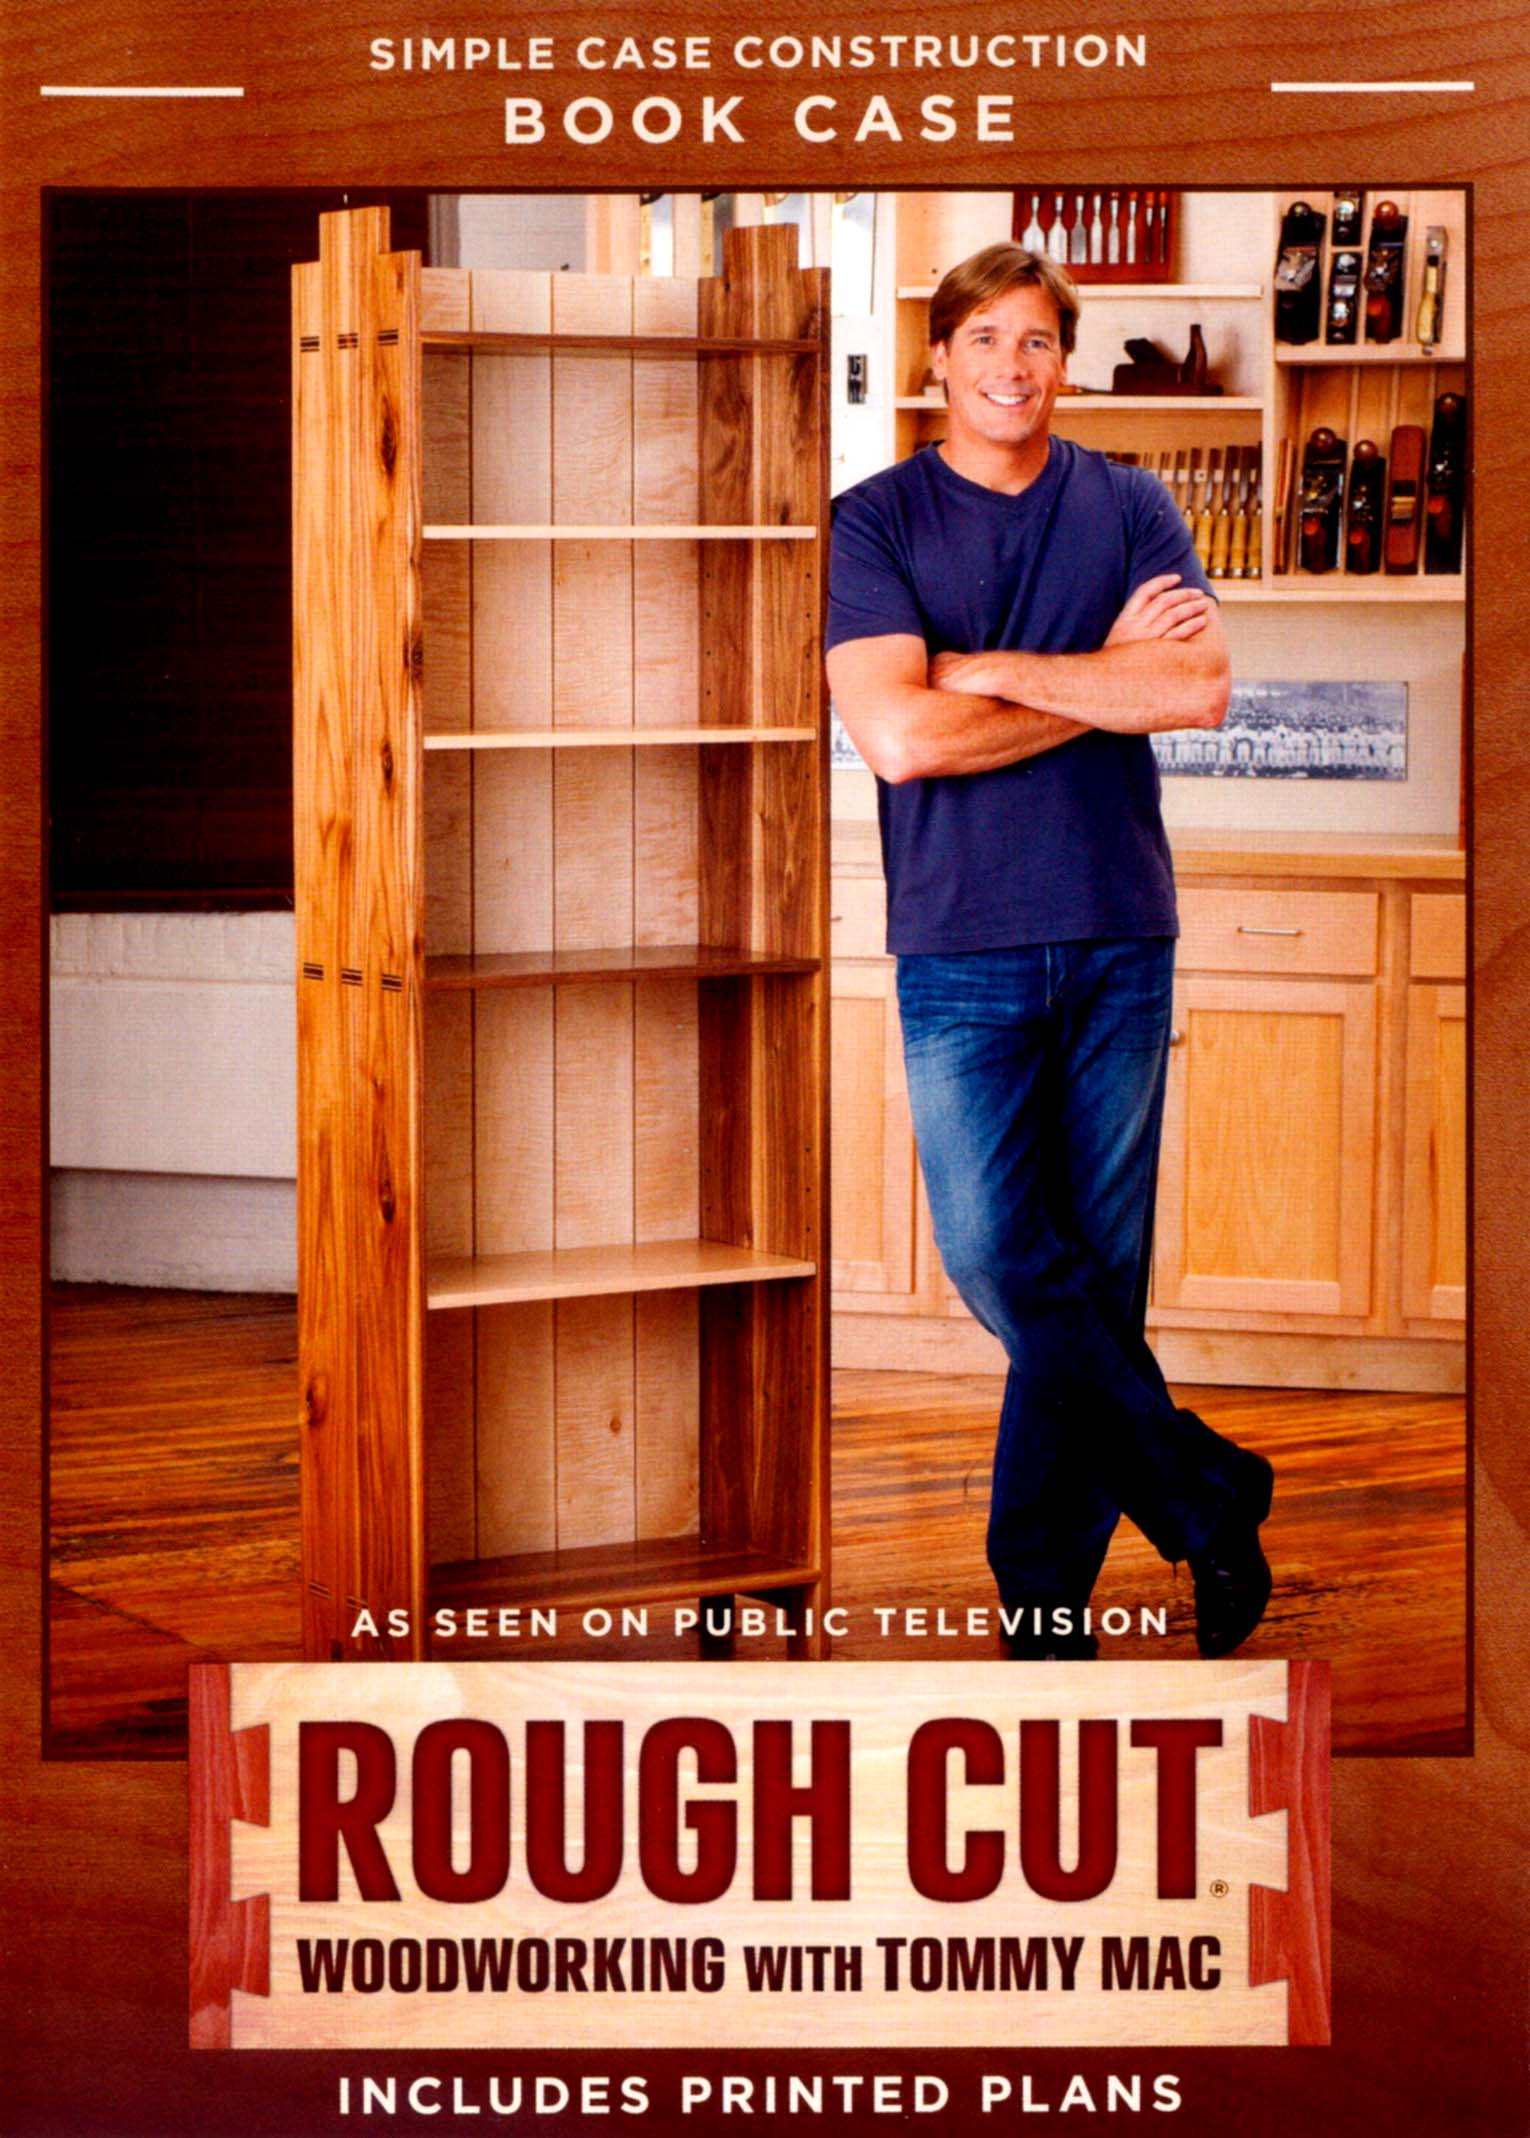 Rough Cut - Woodworking with Tommy Mac: Simple Case Construction Bookcase